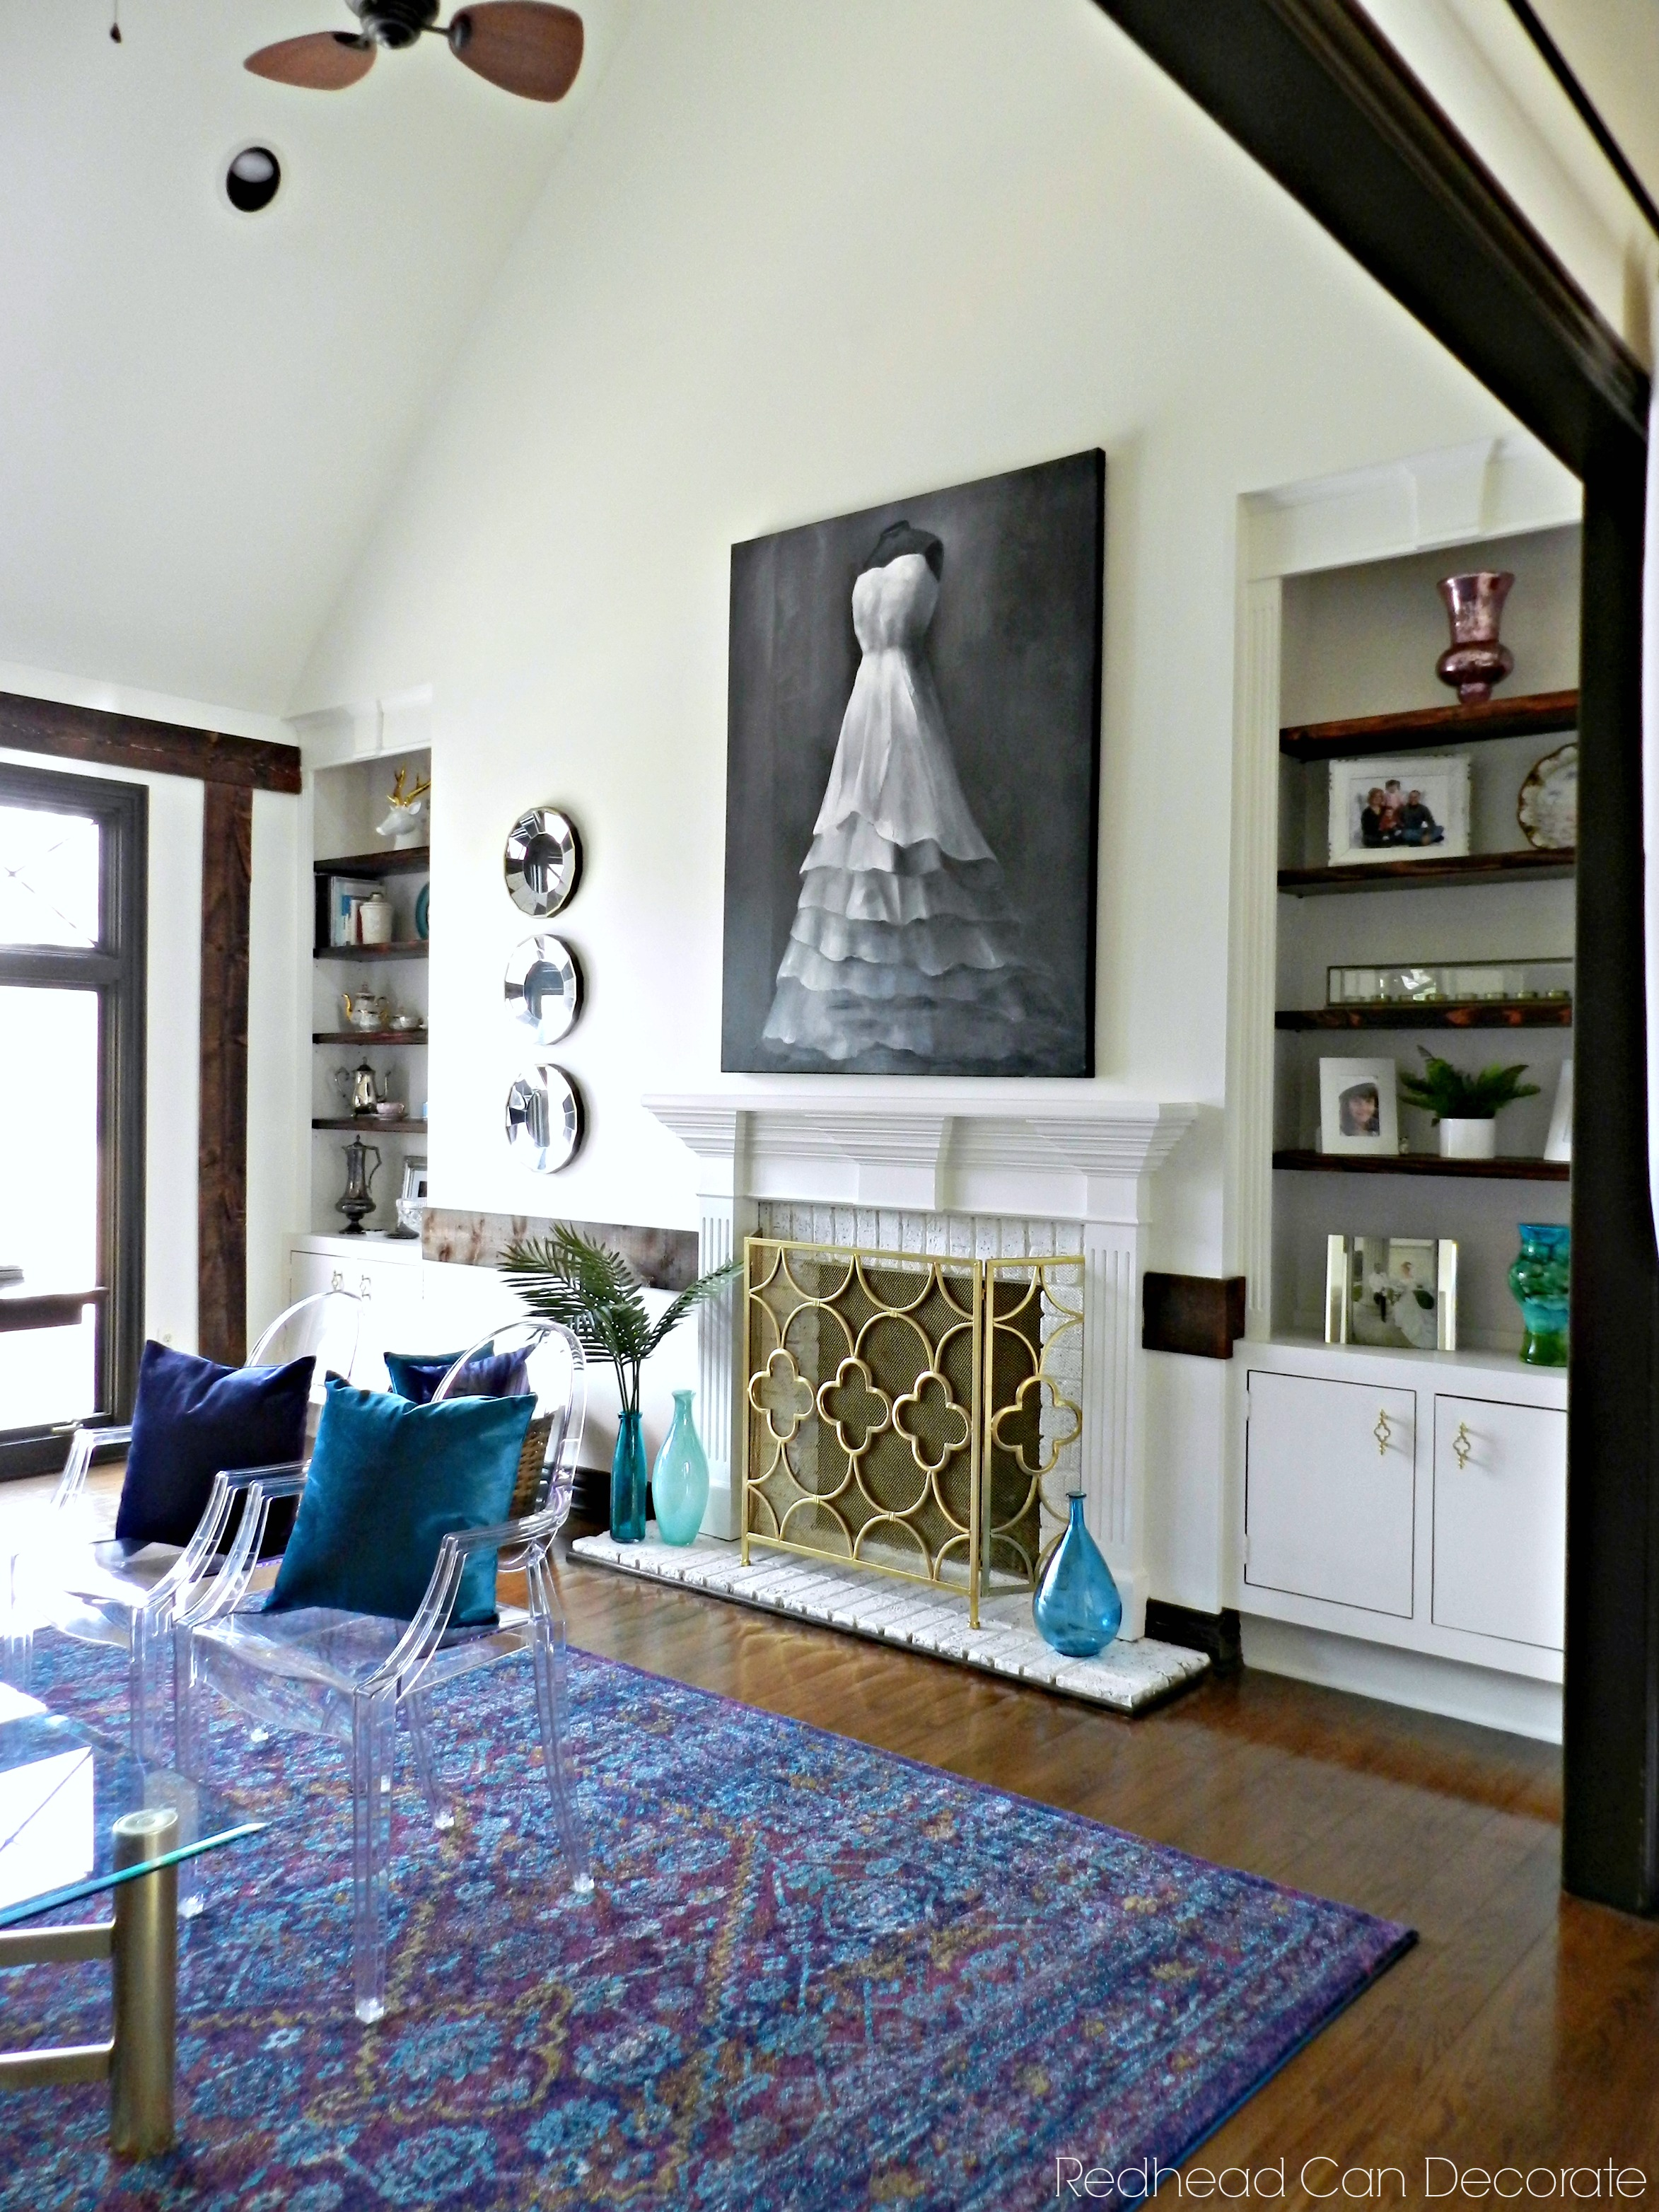 How To Decorate A Brick Fireplace Painted Built In Shelves Brick Fireplace Redhead Can Decorate